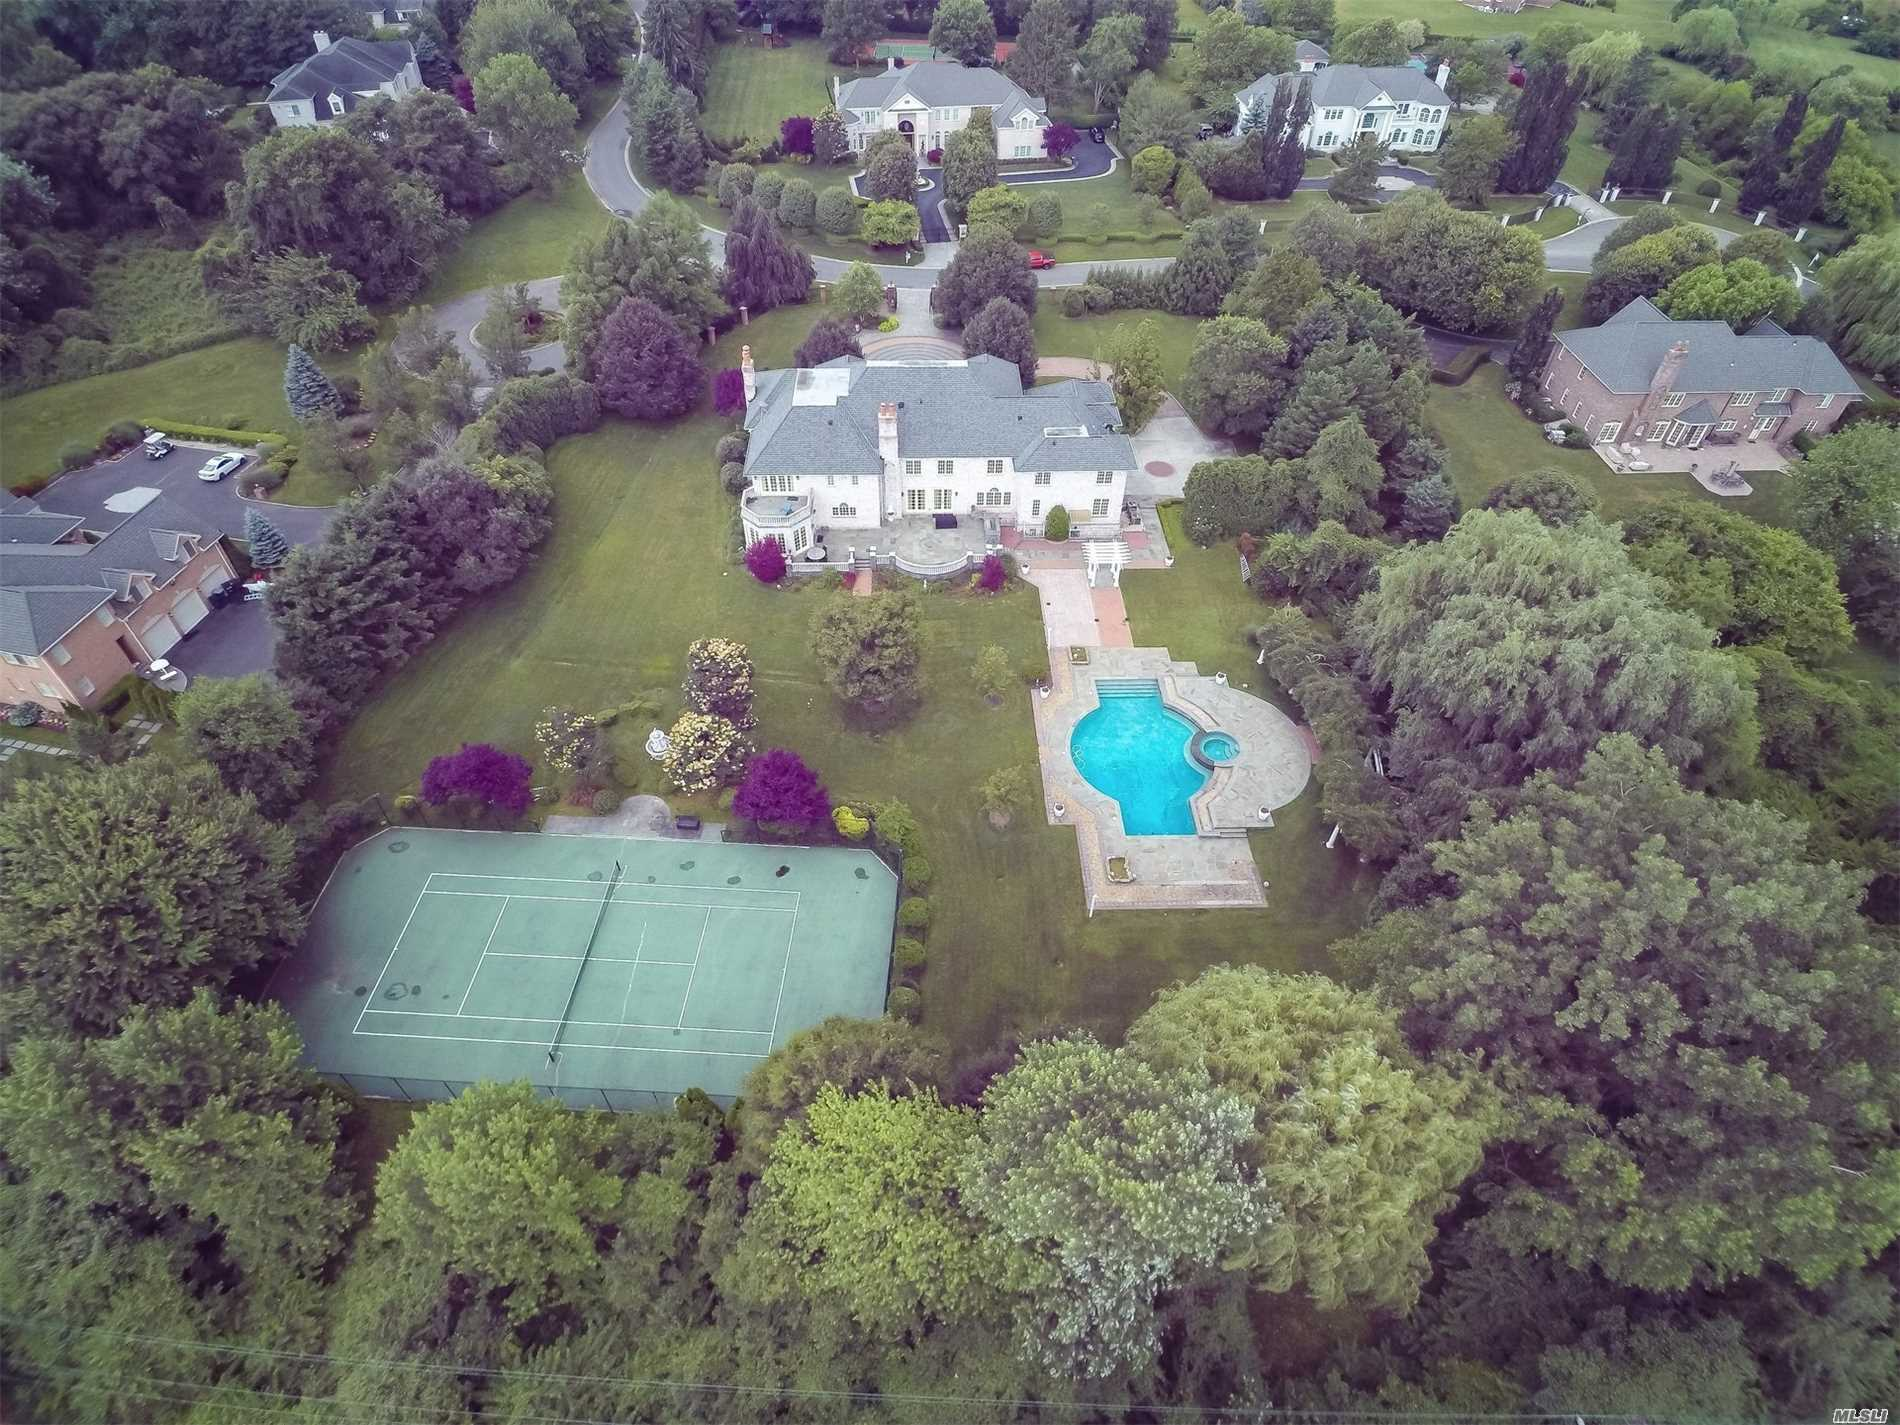 Custom Built & Beautifully Maintained 10K+ Sf Brick Colonial On Quiet Cul-De-Sac. Home Boasts Large Spacious Rooms Throughout. Gourmet Eik W Wonderful Breakfast Nook. Great Home For Entertaining. Perfect For Large Family W 8 Full Bedrooms & 8.5 Full Bathrooms. 2500 Bottle Wine Cellar & 16 Seat State Of The Art Theater. Backyard Paradise W Gunite Pool & Tennis Ct On 2.53 Flat Acres. Gated Property.